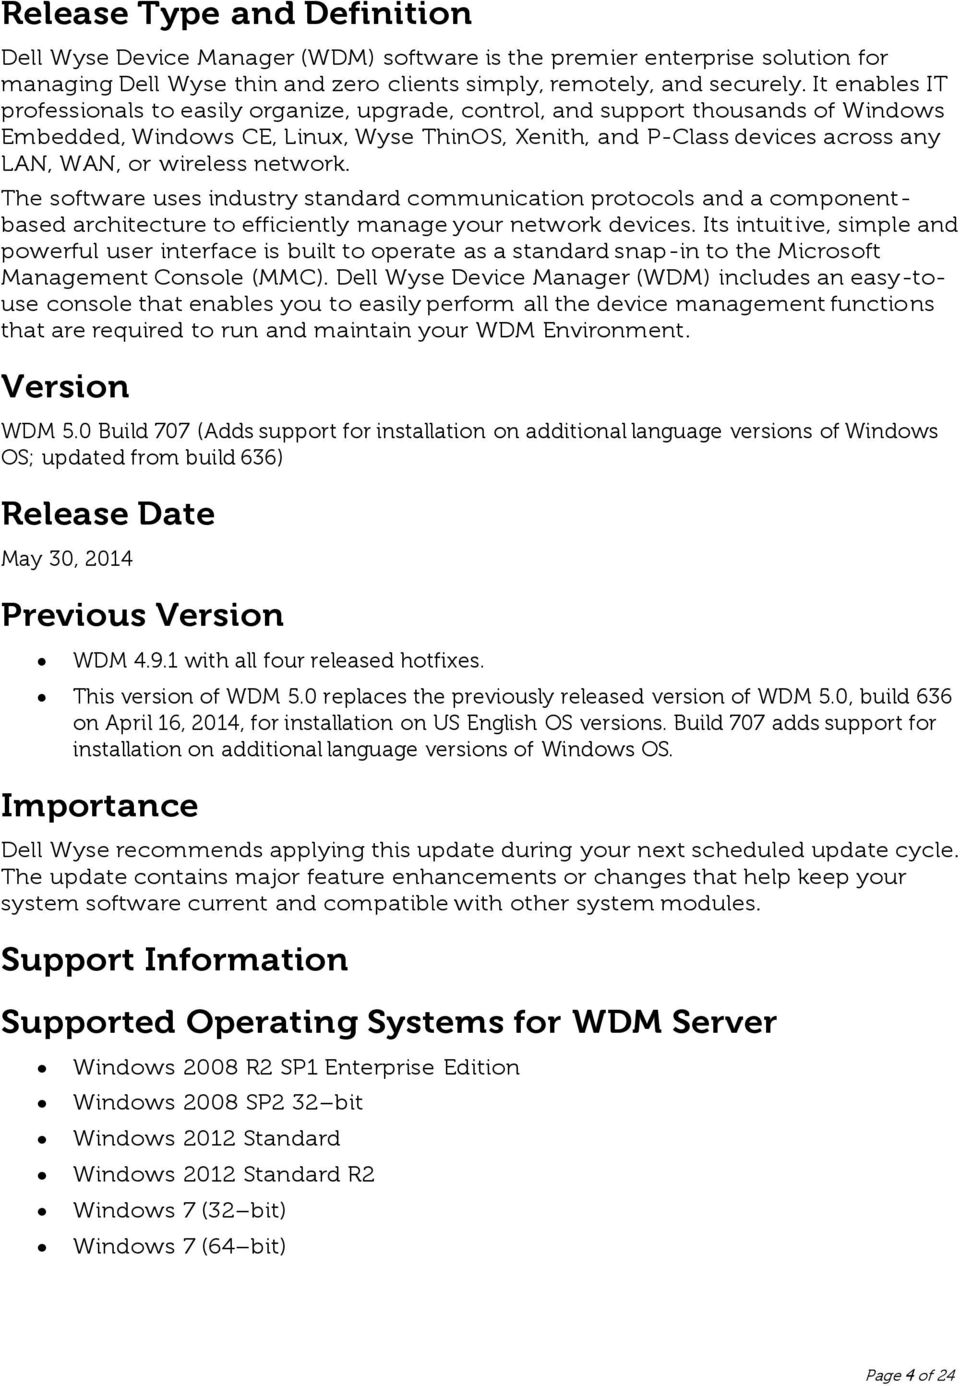 Dell Wyse Device Manager (WDM) Version PDF